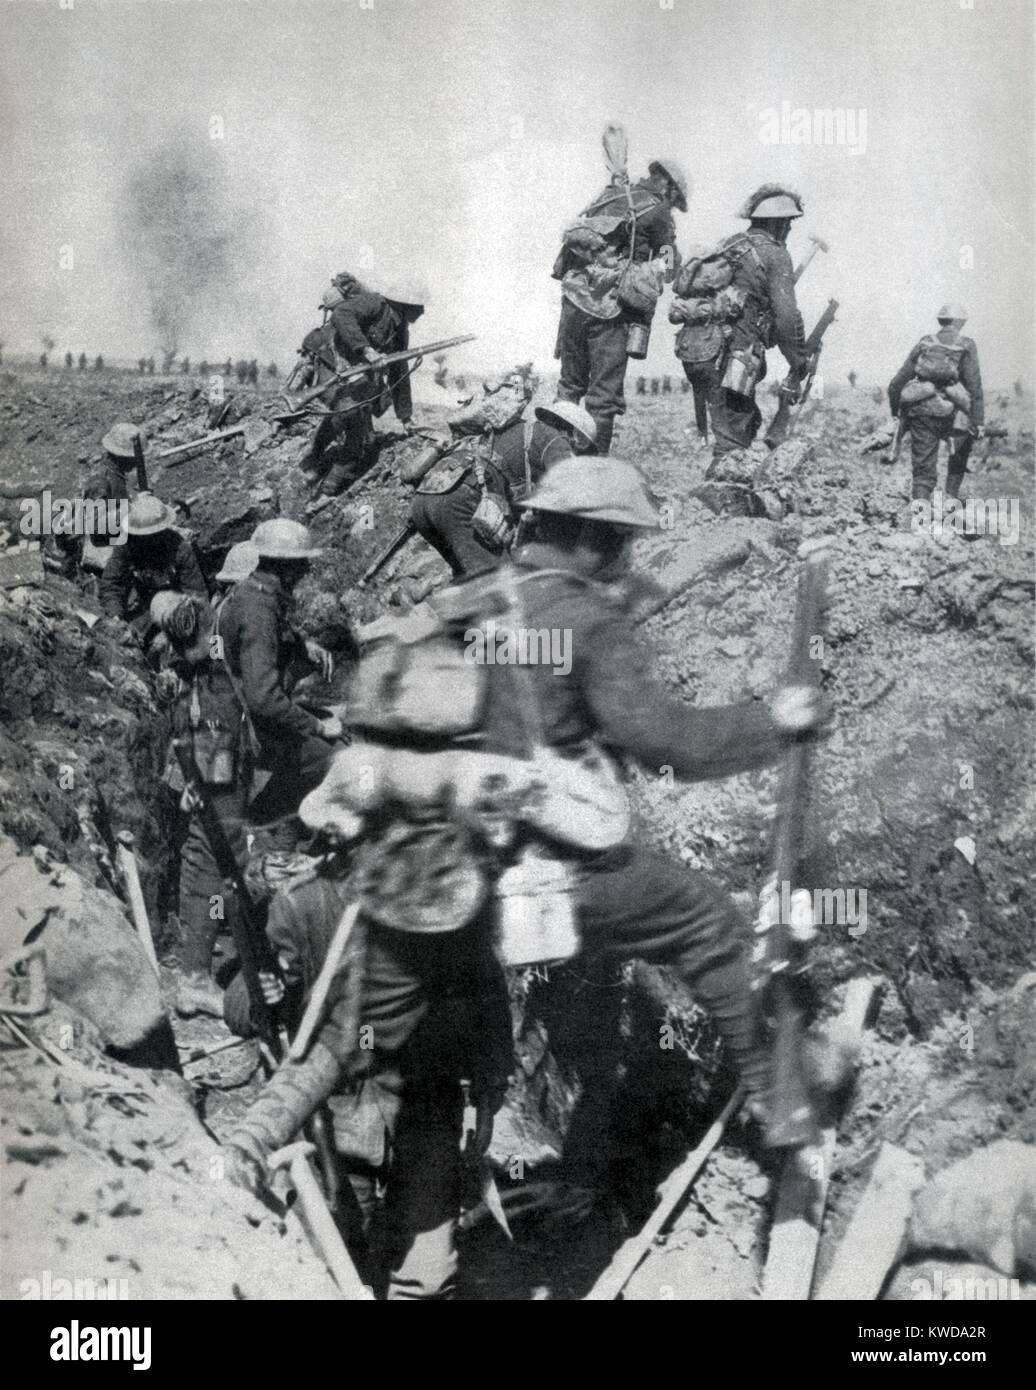 World War 1. Battle of Arras (April 9-12, 1917). The second wave of British infantry leaves their trenches. The - Stock Image